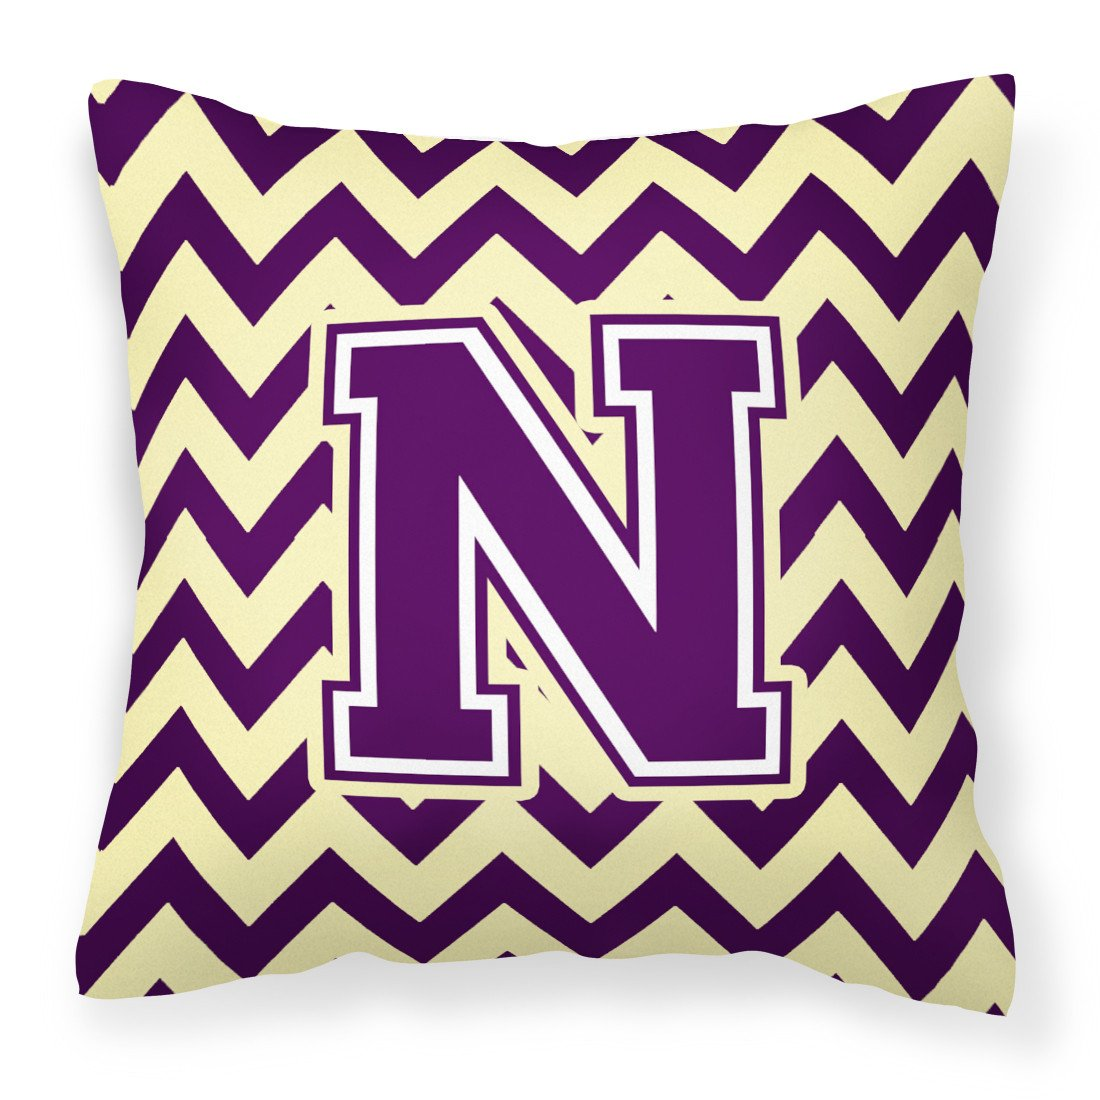 Letter N Chevron Purple and Gold Fabric Decorative Pillow CJ1058-NPW1414 by Caroline's Treasures